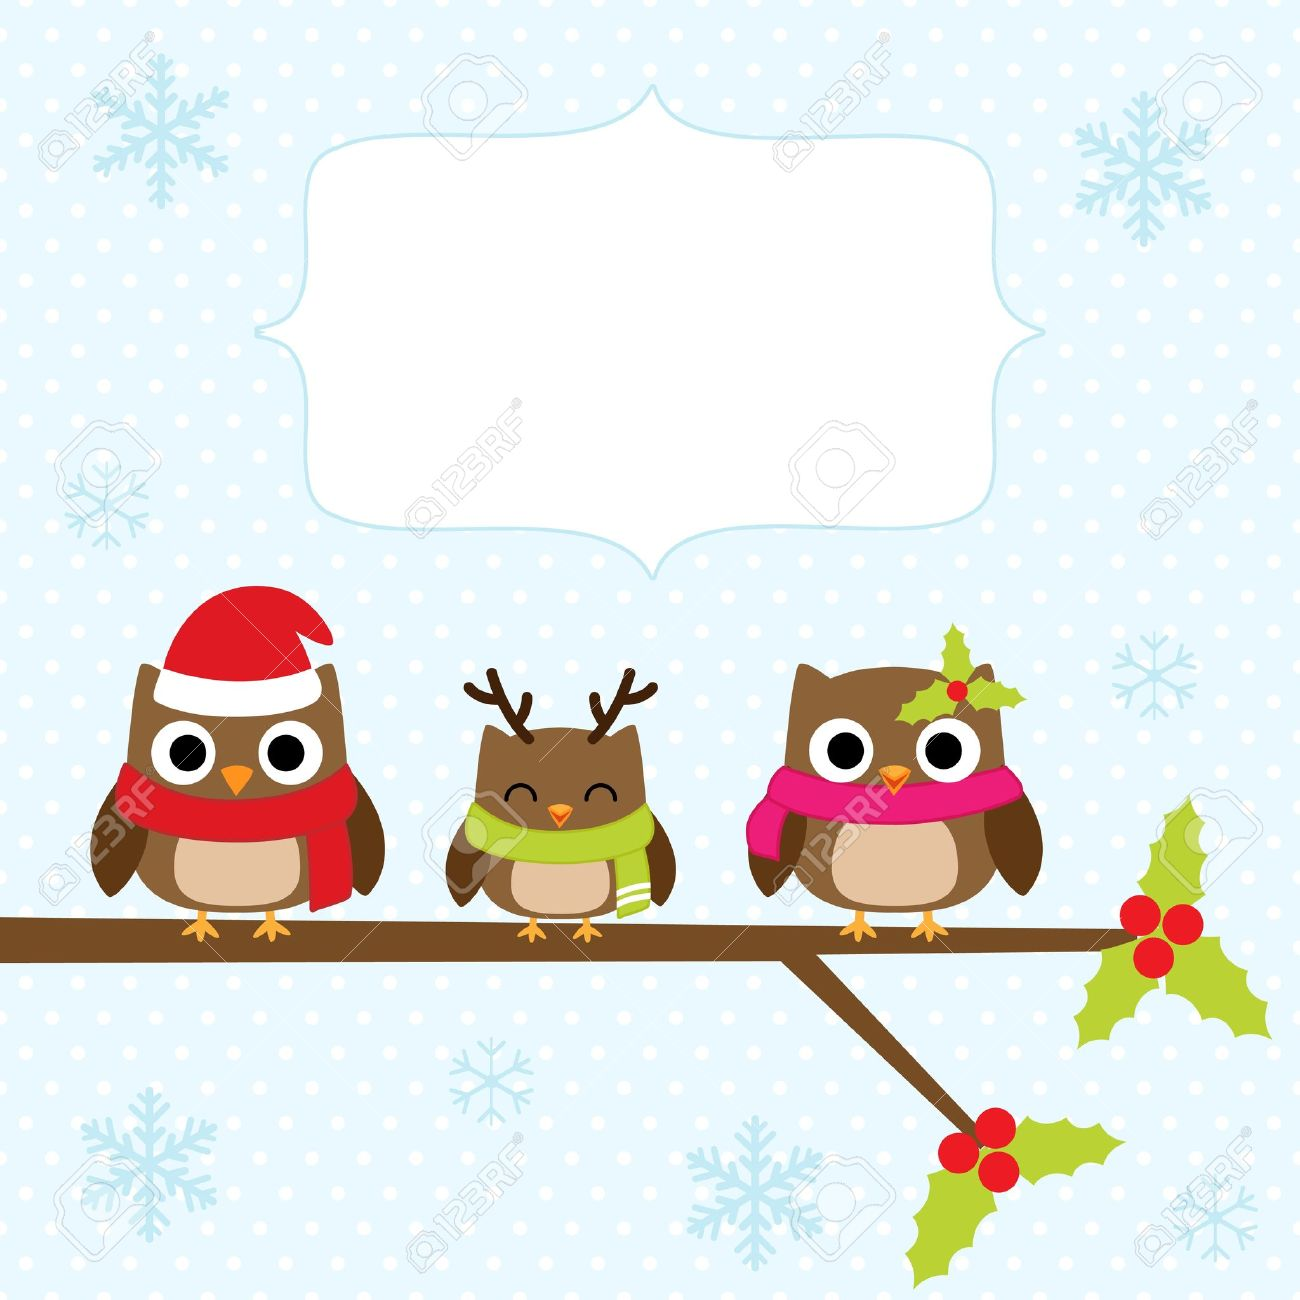 Christmas Card With Family Of Owls Royalty Free Cliparts, Vectors ...